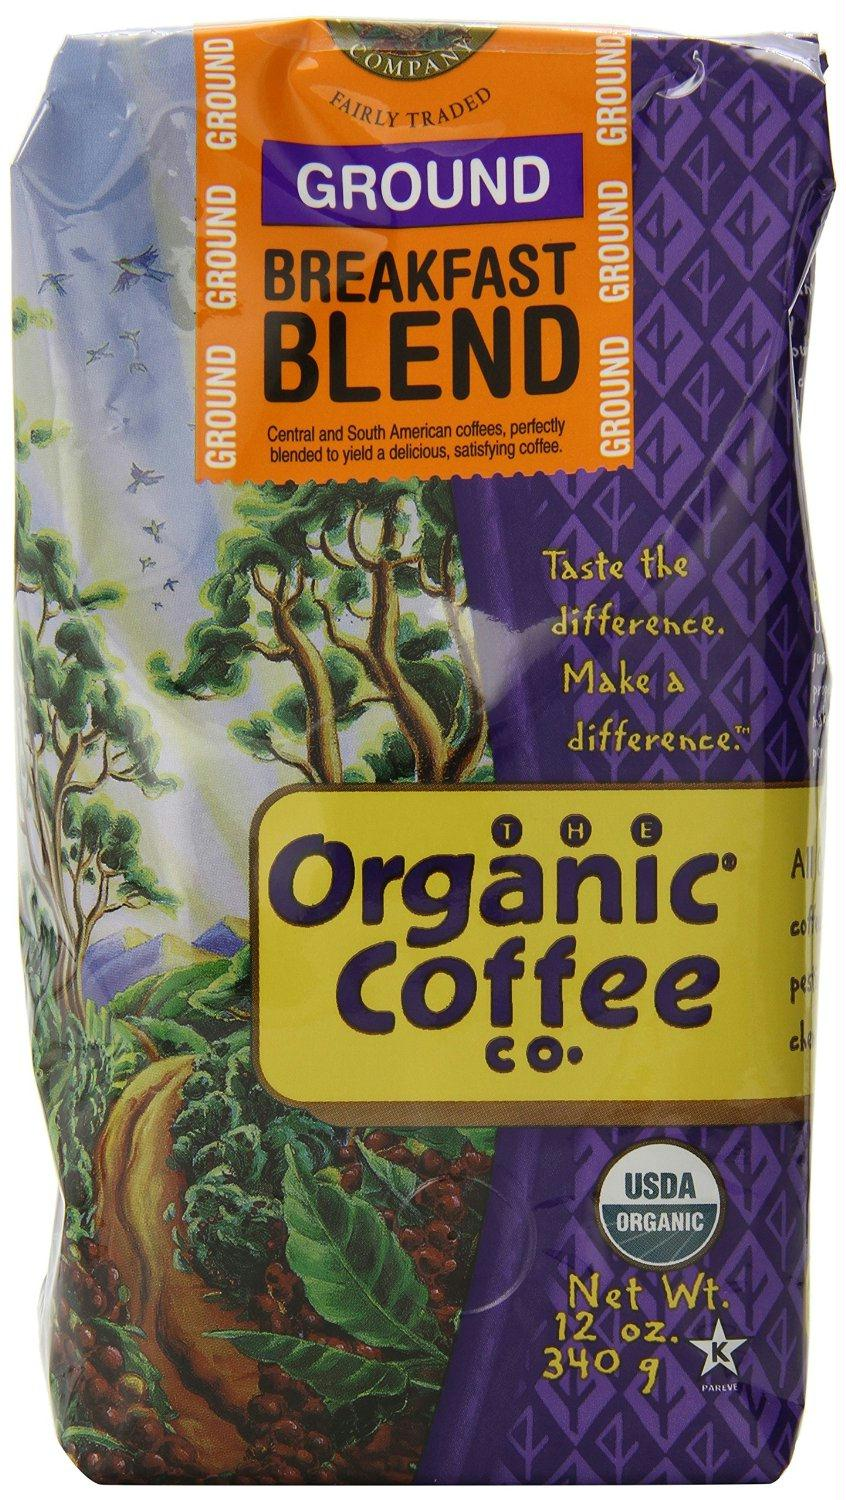 Organic Coffee Co.: Ground Coffee Breakfast Blend, 12 Oz